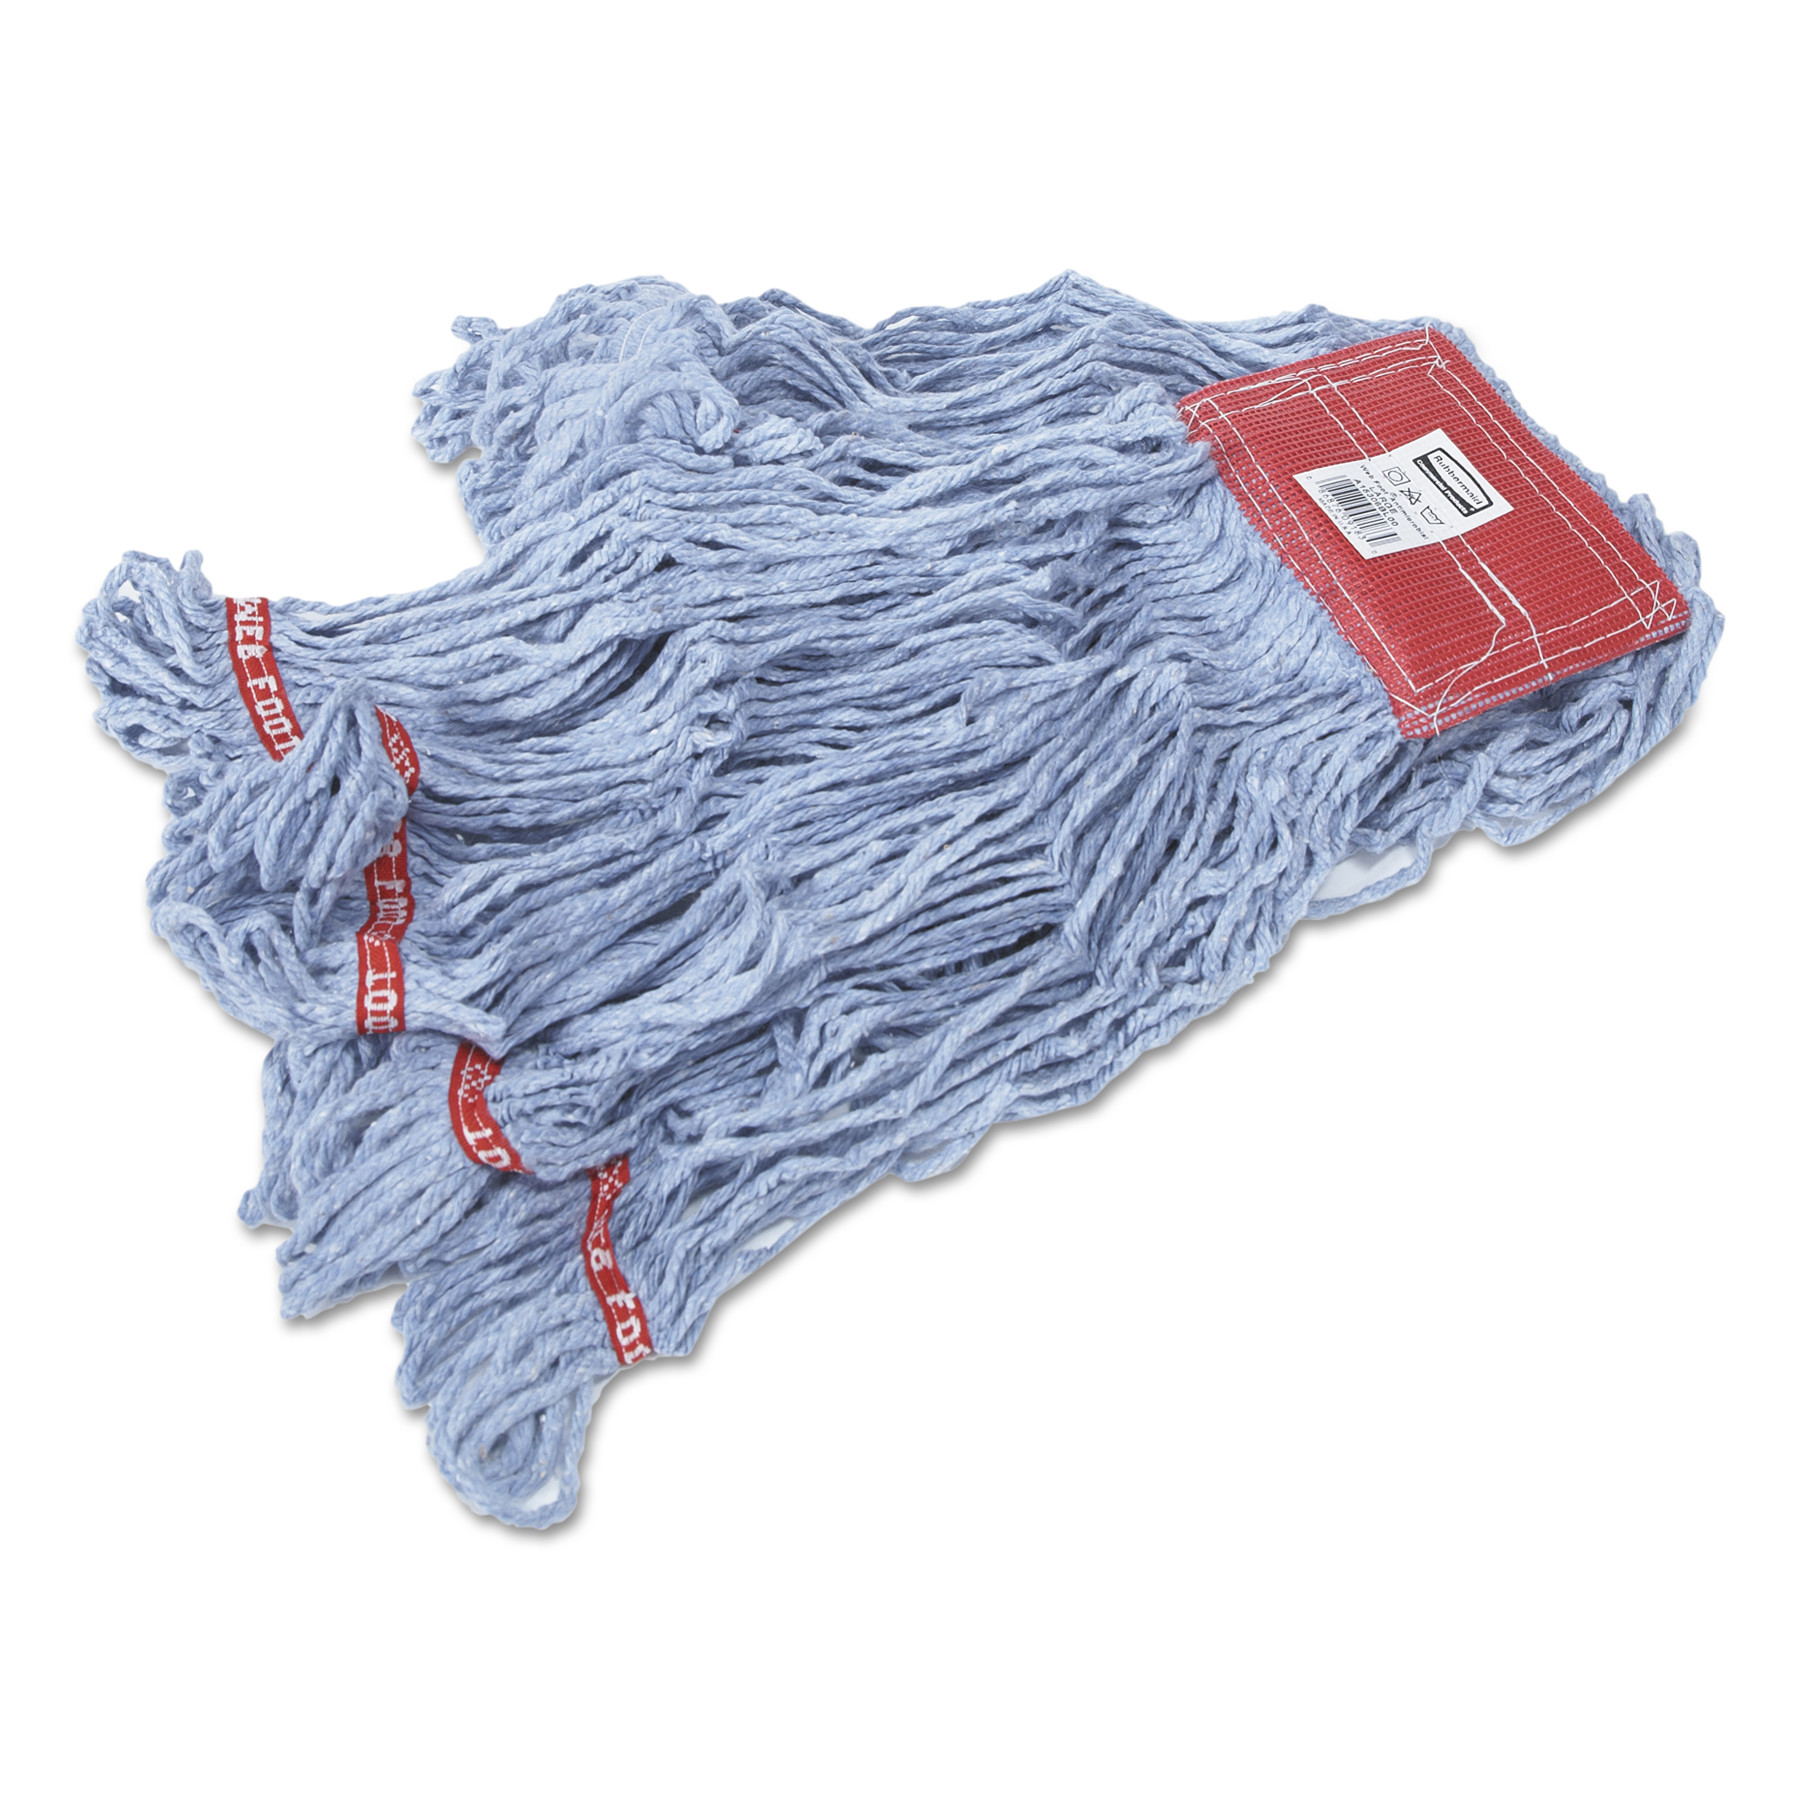 Rubbermaid Commercial Web Foot Wet Mops, Cotton/Synthetic, Blue, Large, 5-in. Red Headband, 6/Carton